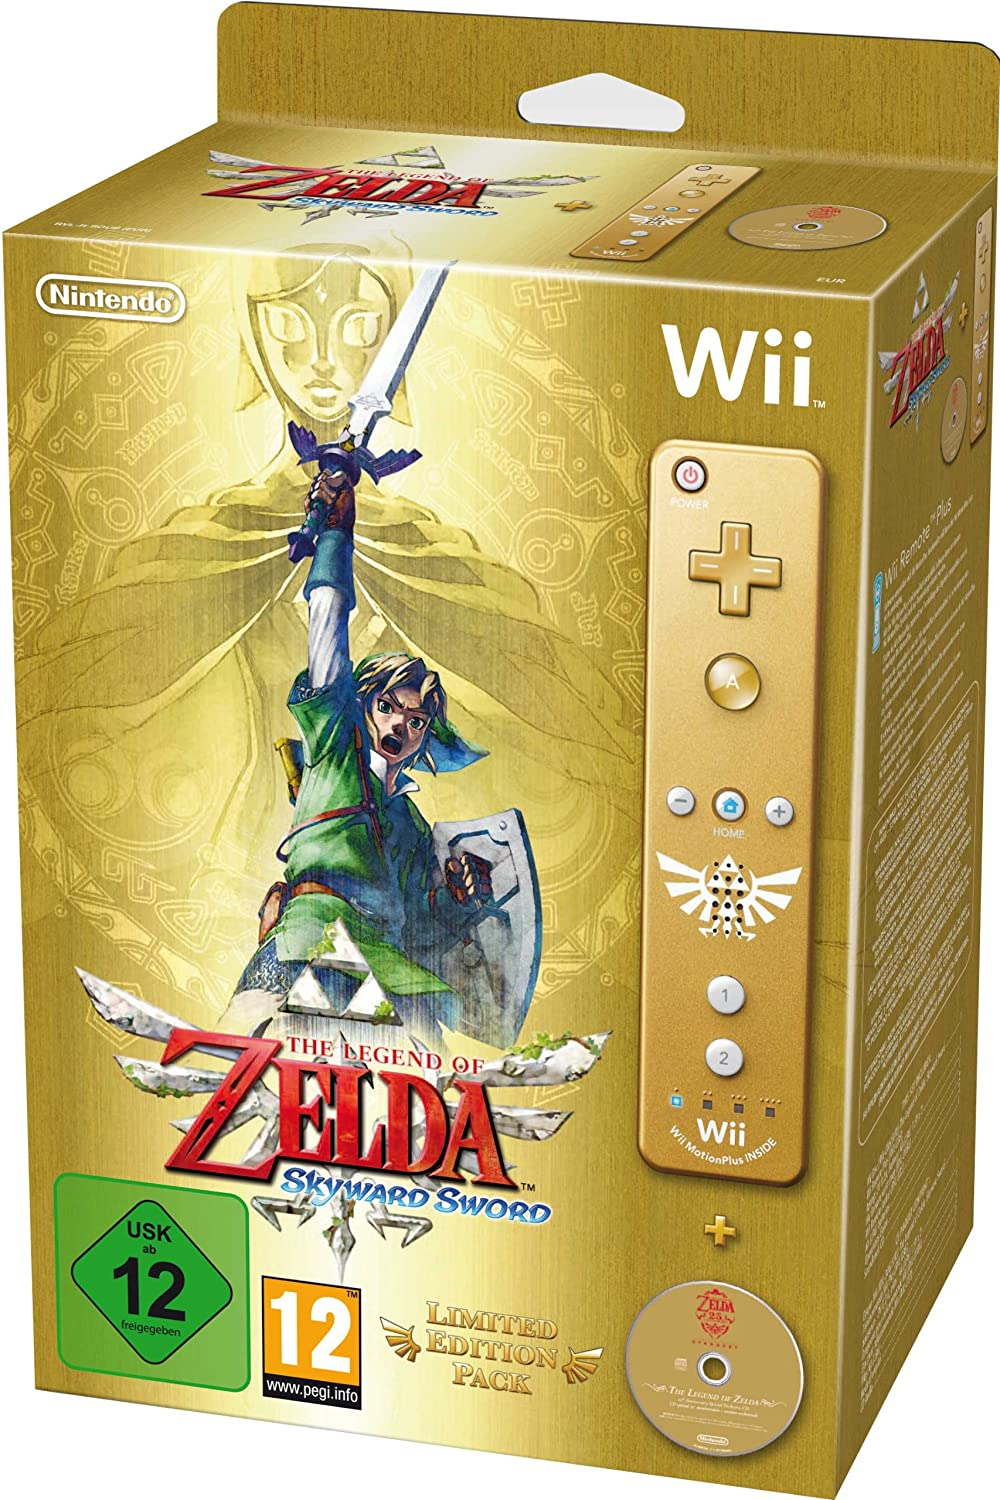 The Legend of Zelda: Skyward Sword - Limited Edition Gold Wii Remote  Bundle: Amazon.co.uk: PC & Video Games